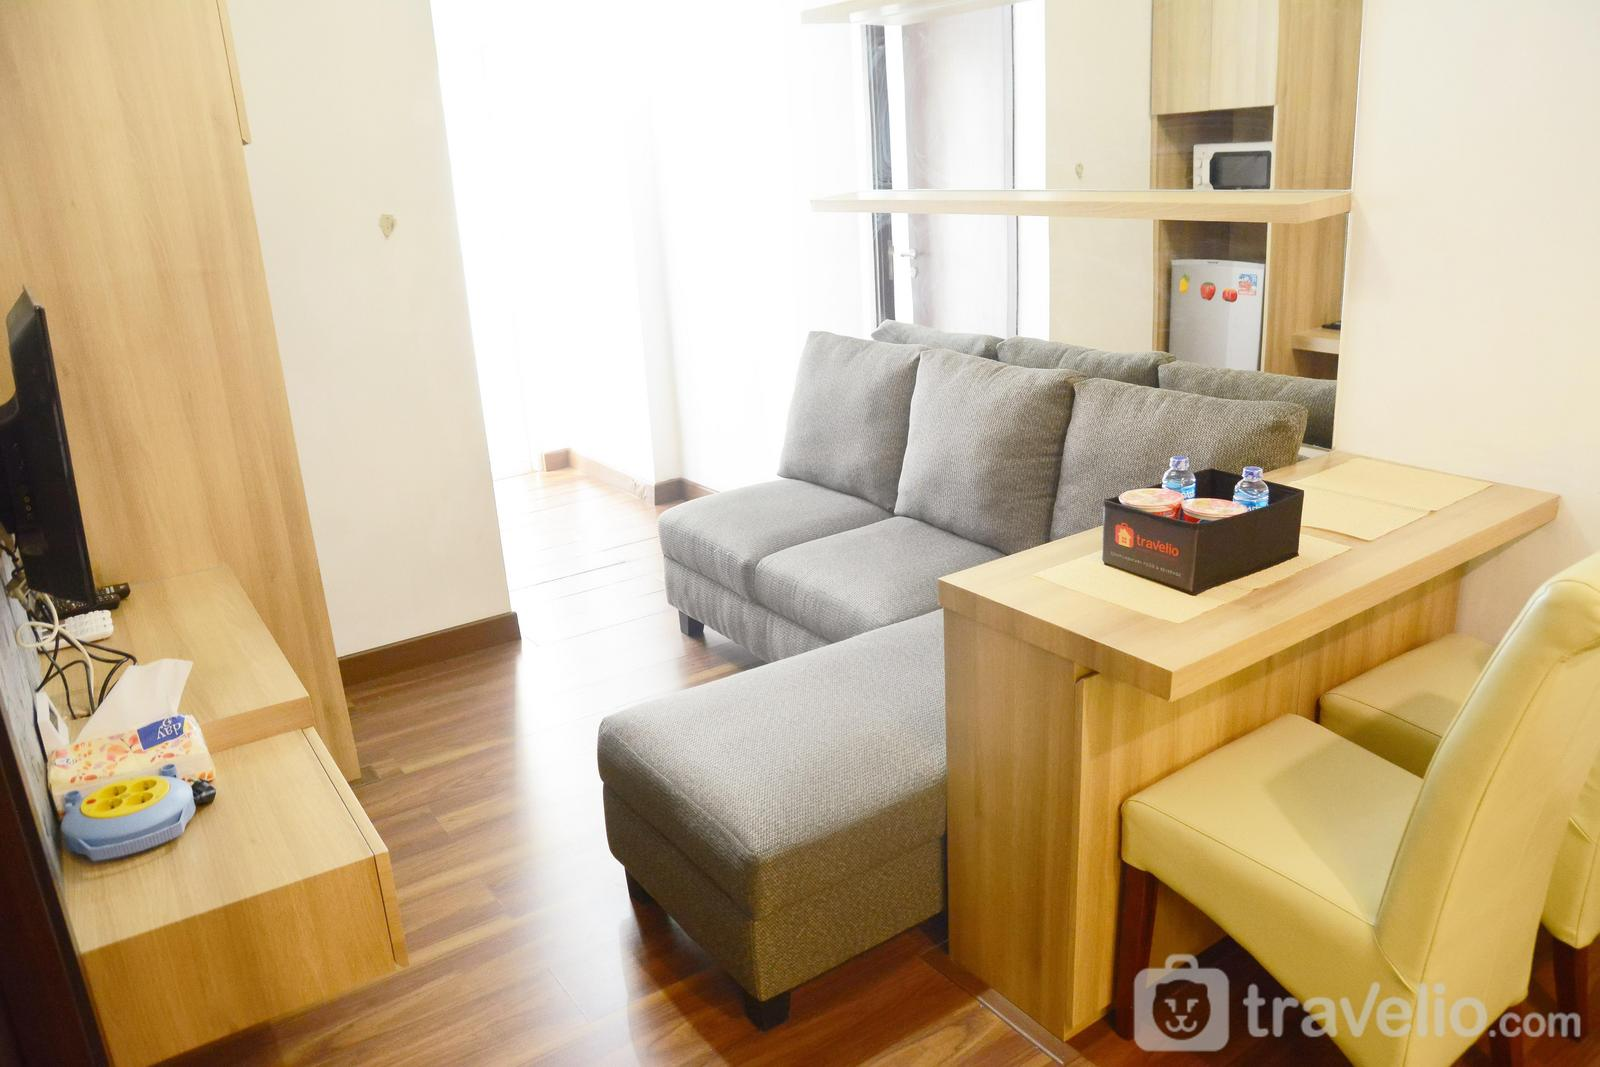 Aspen Residences Apartment - Cozy 2BR at Aspen Apartment near to Mall By Travelio